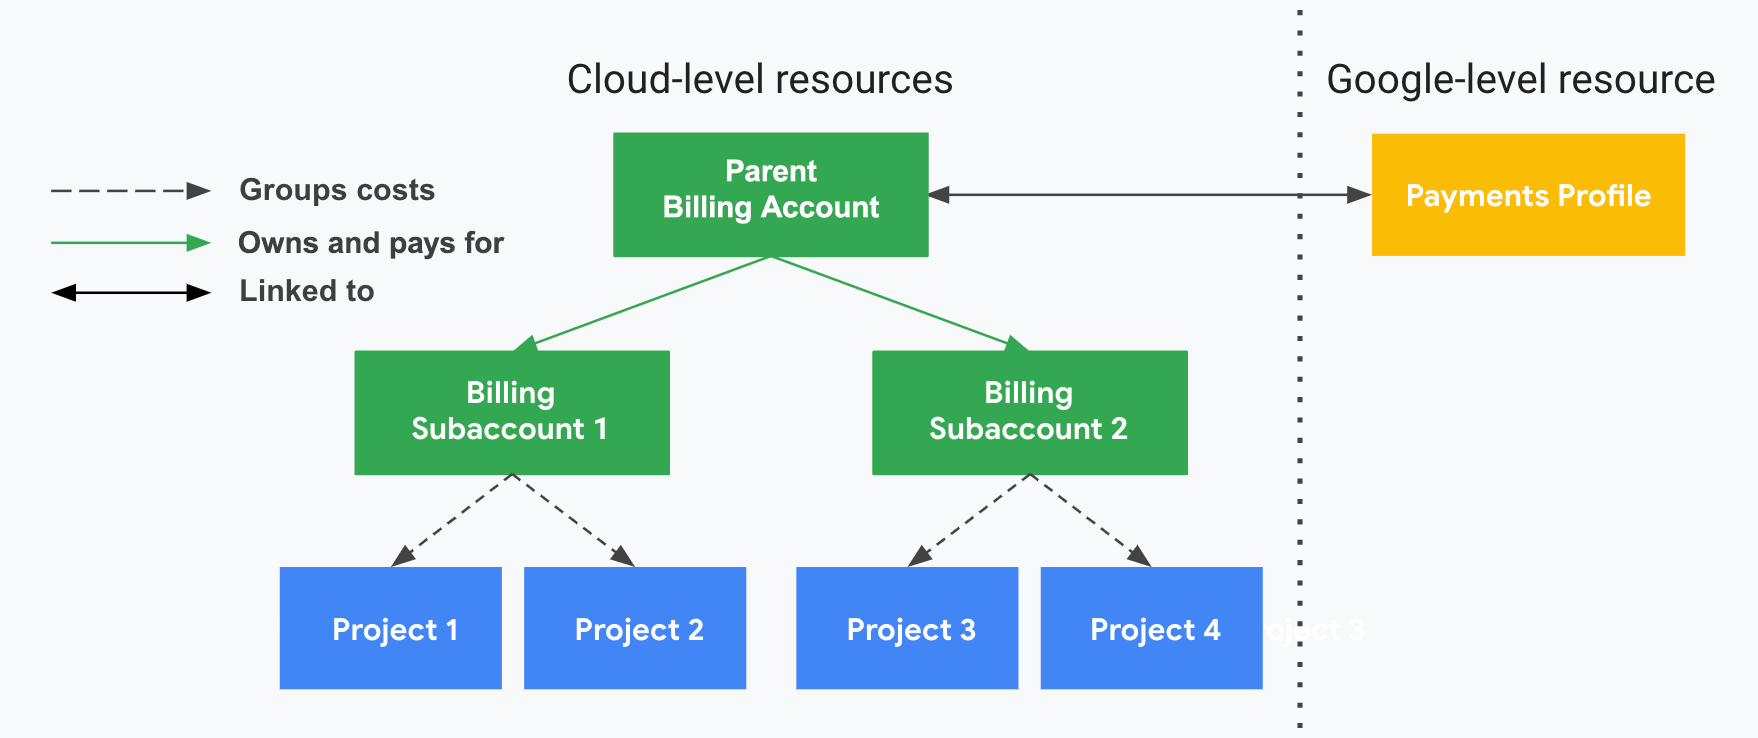 Describes how projects relate to Cloud Billing accounts,          Cloud Billing subaccounts, and your payments profile. One side          shows your Cloud-level resources (Cloud Billing account,          subaccounts, and associated projects) and the other side, divided by a          vertical dotted line, shows your Google-level resource (a          payments profile). Your projects are paid for by your          Cloud Billing subaccounts. Your subaccounts are paid for          by your master Cloud Billing account, which is linked to          your payments profile.